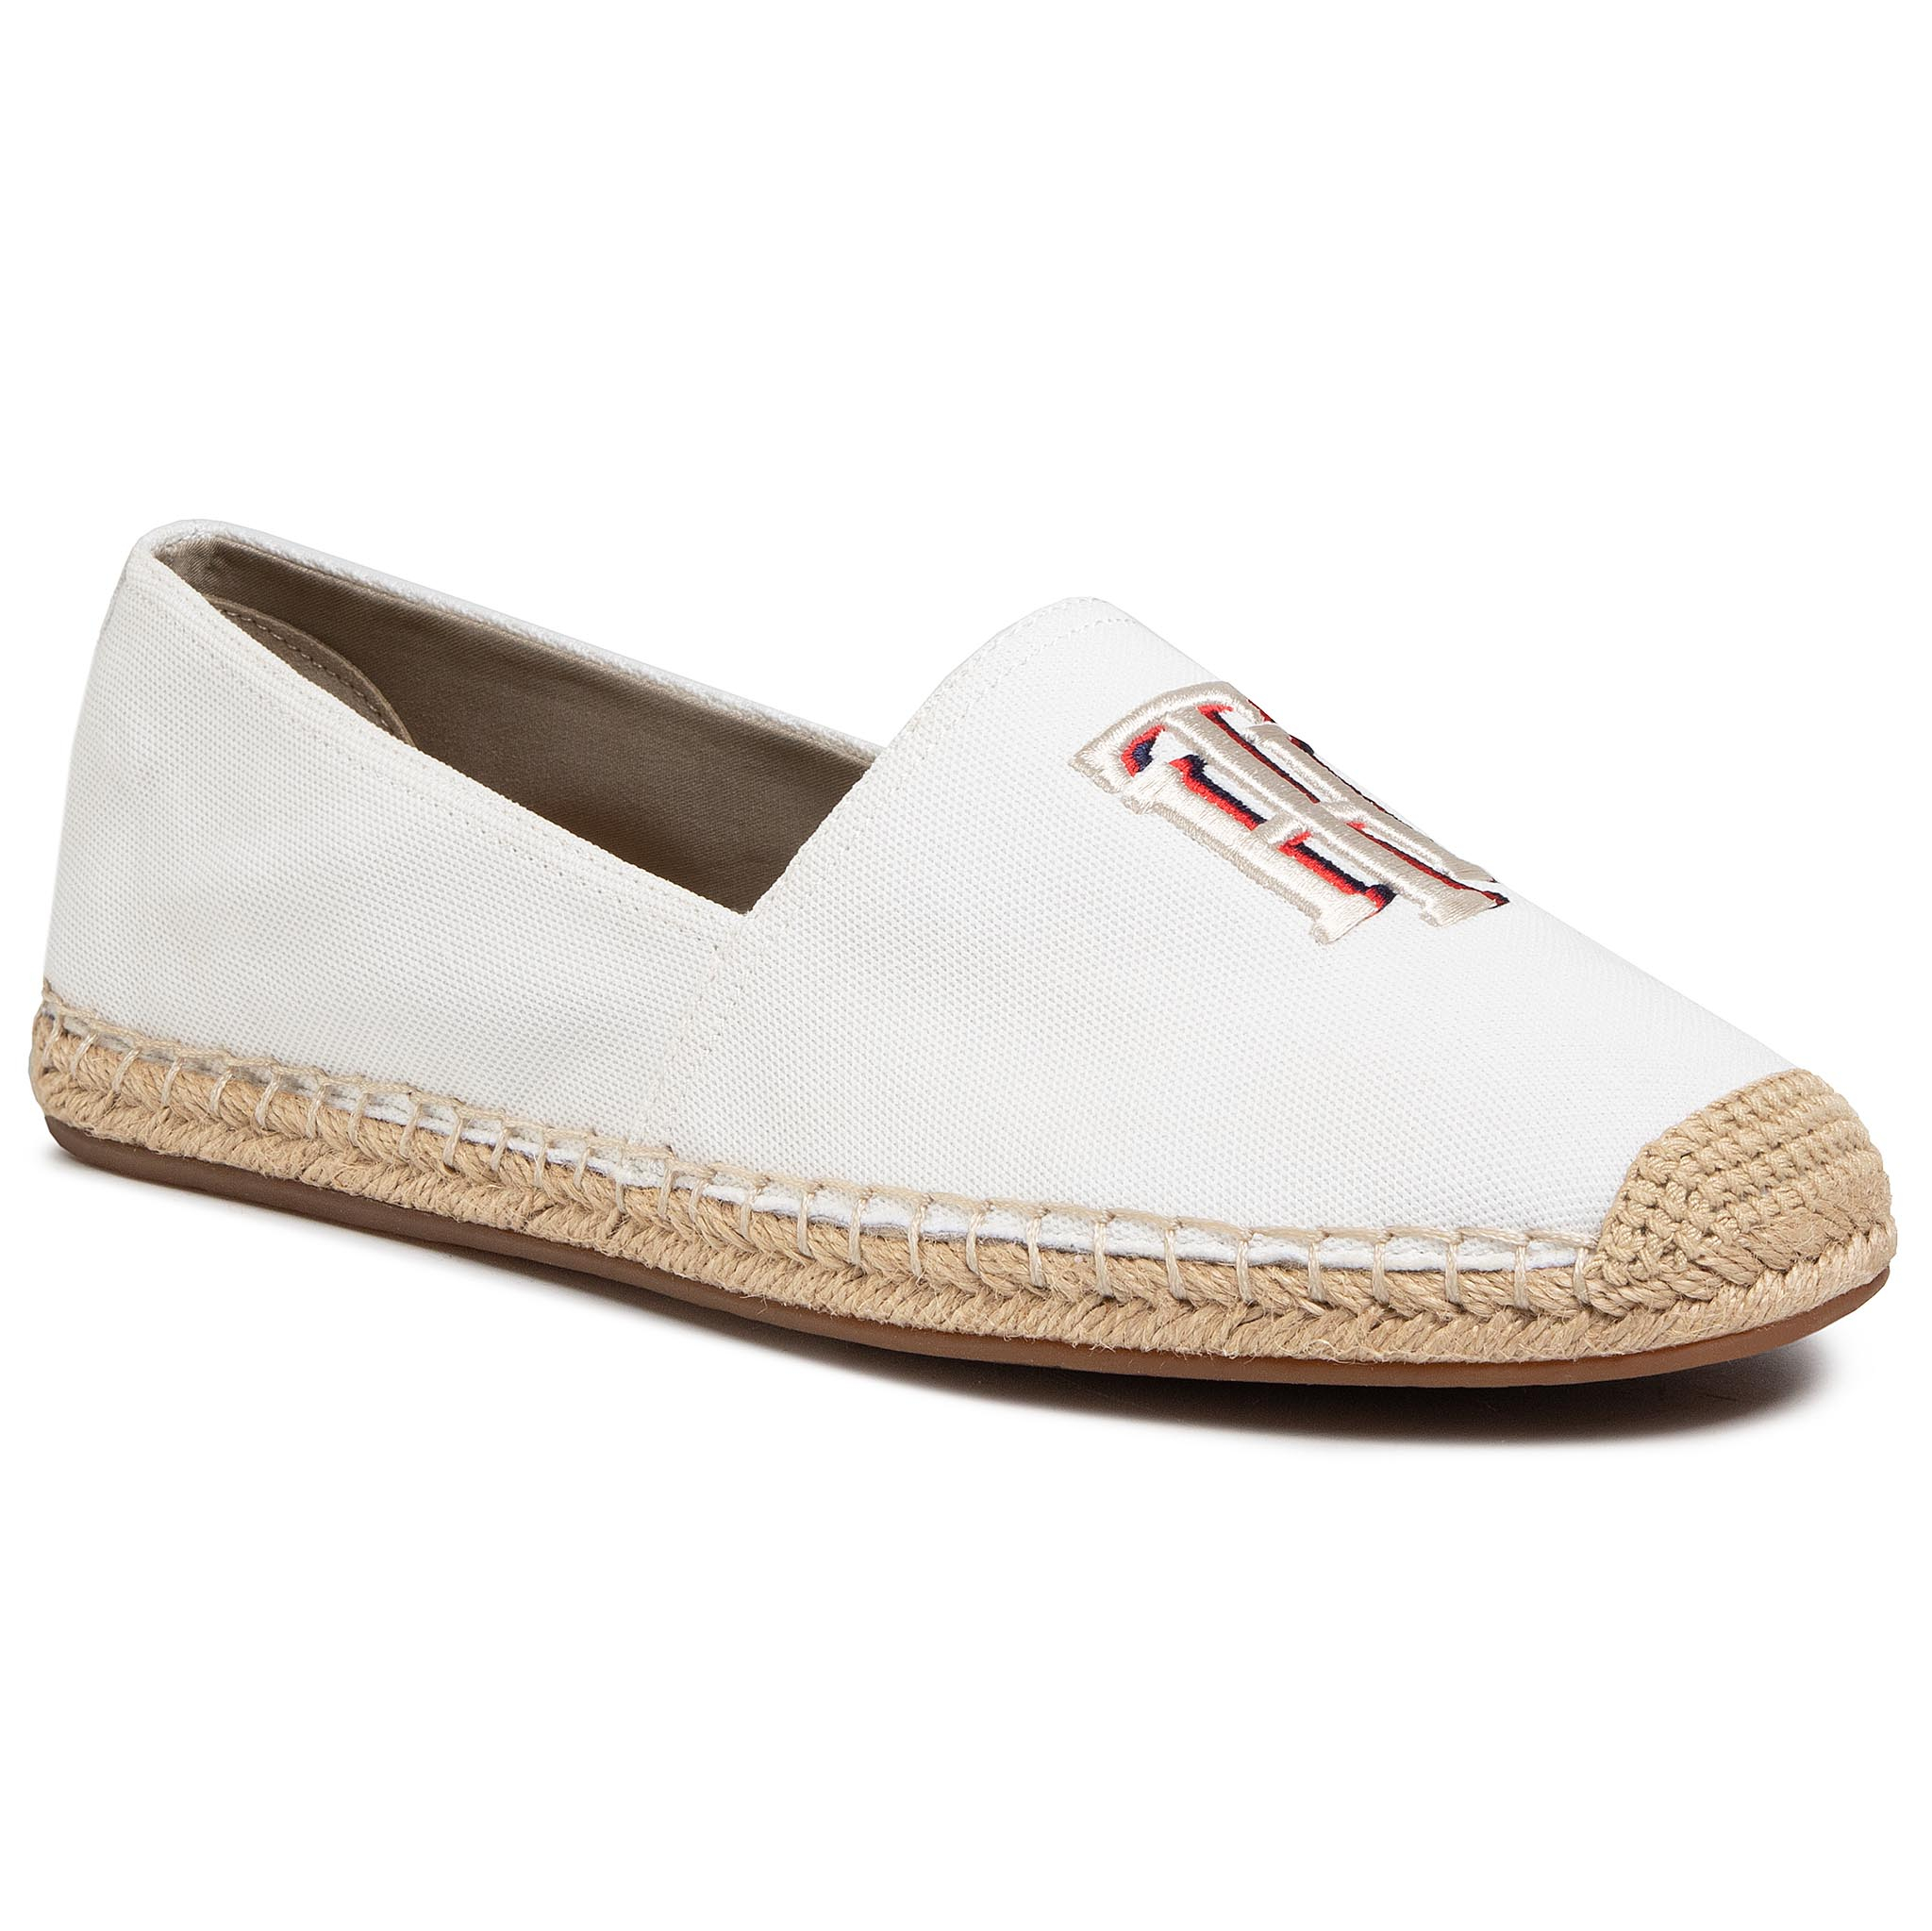 Espadrile TOMMY HILFIGER - Nautical Th Basic Espadrille FW0FW04750 Ivory YBI